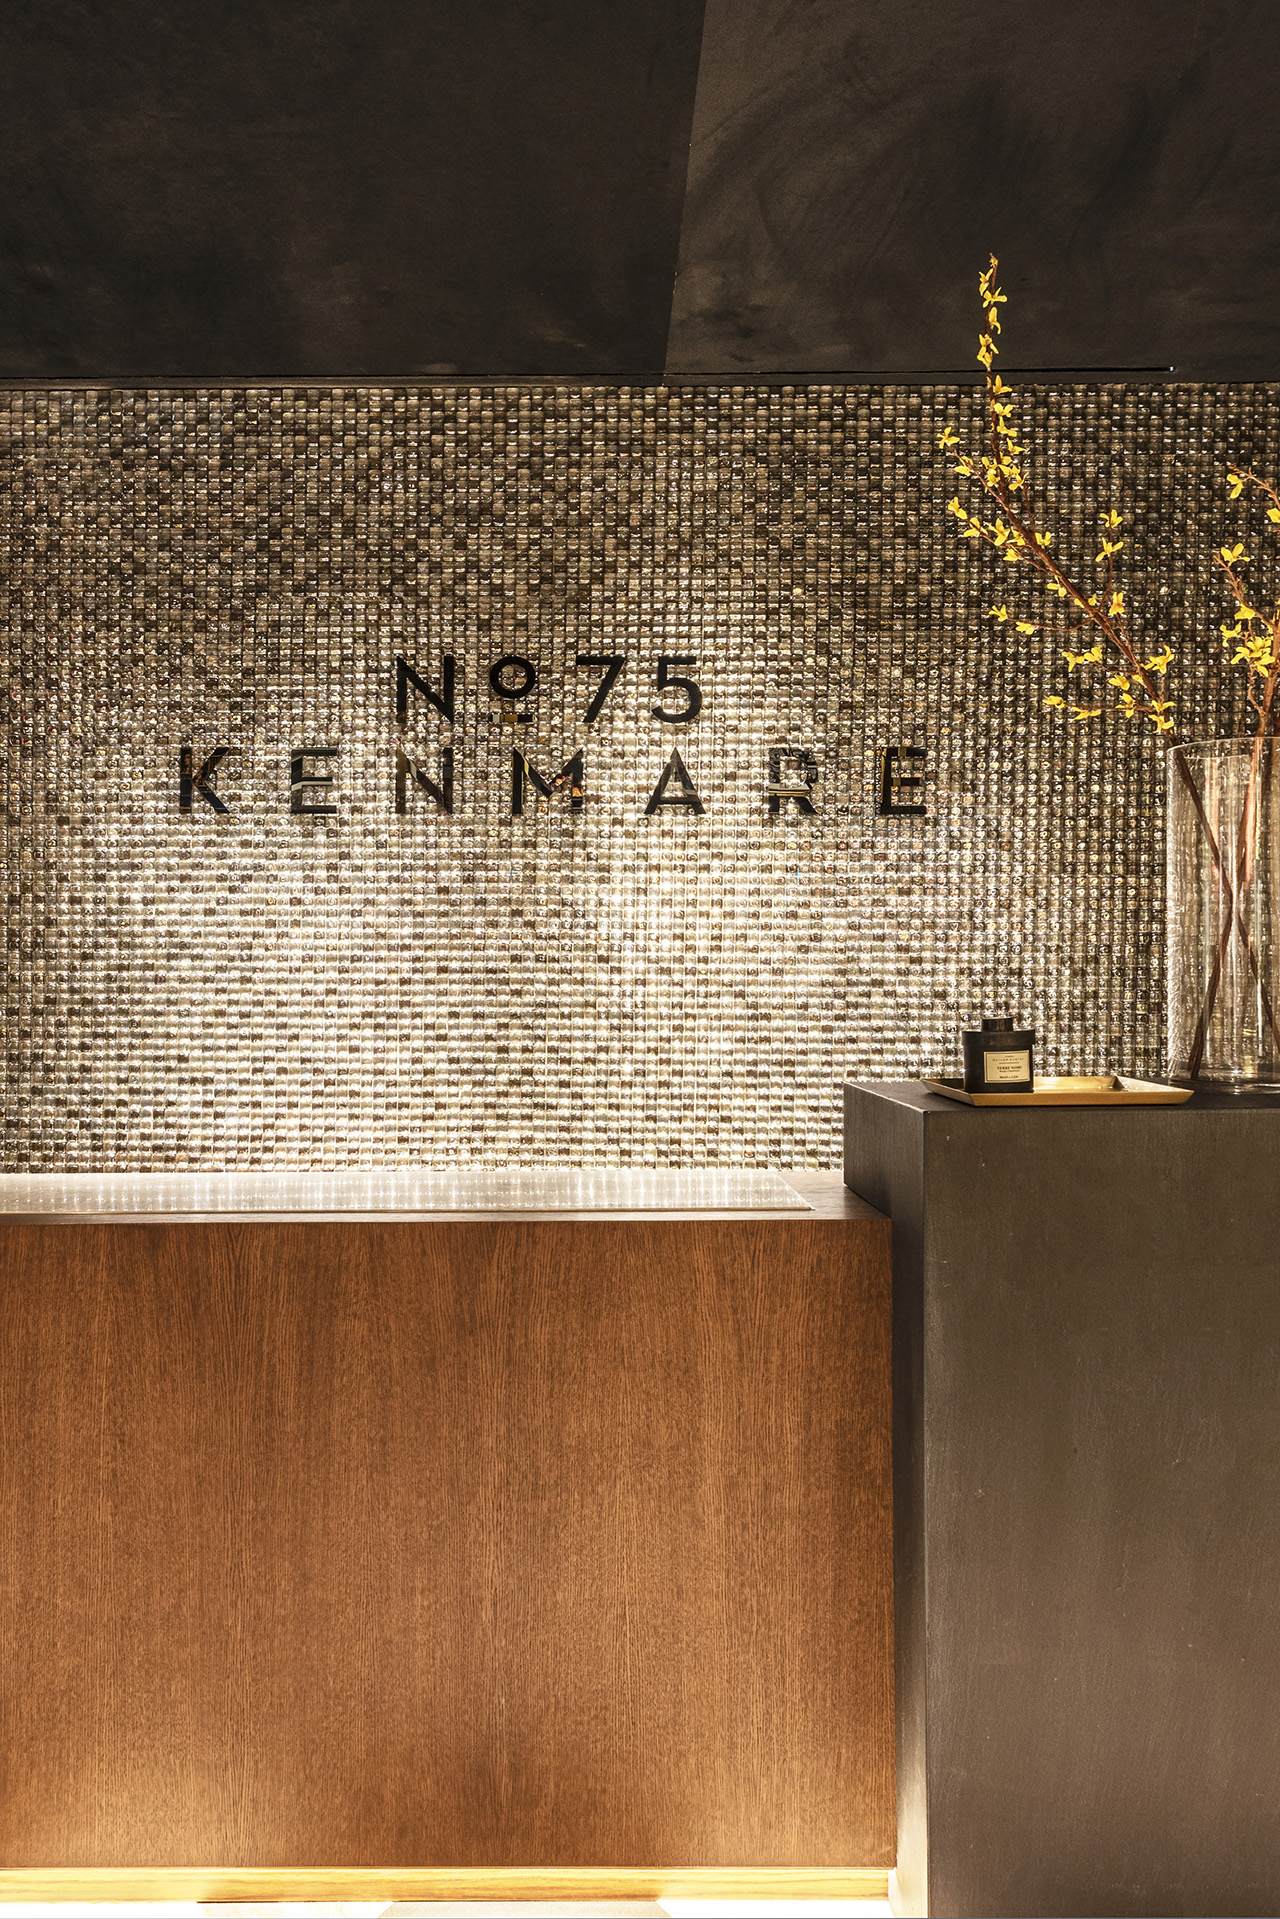 75 Kenmare's 24/7 concierge . Photo by Gianni Franchellucci.